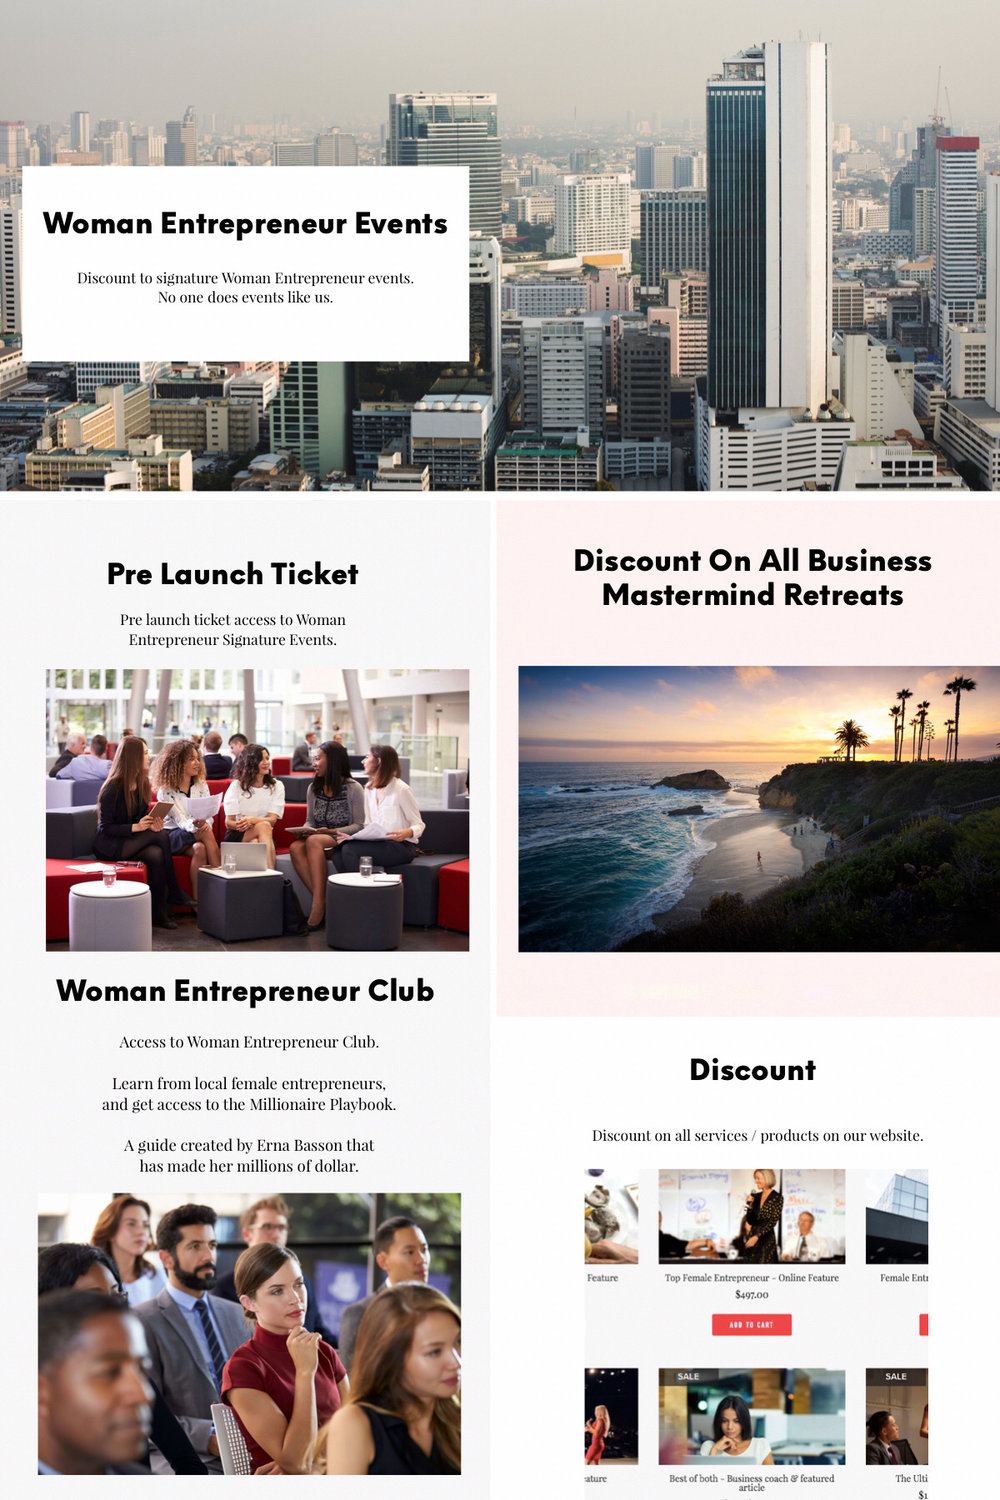 Benefits for Members of Woman Entrepreneur